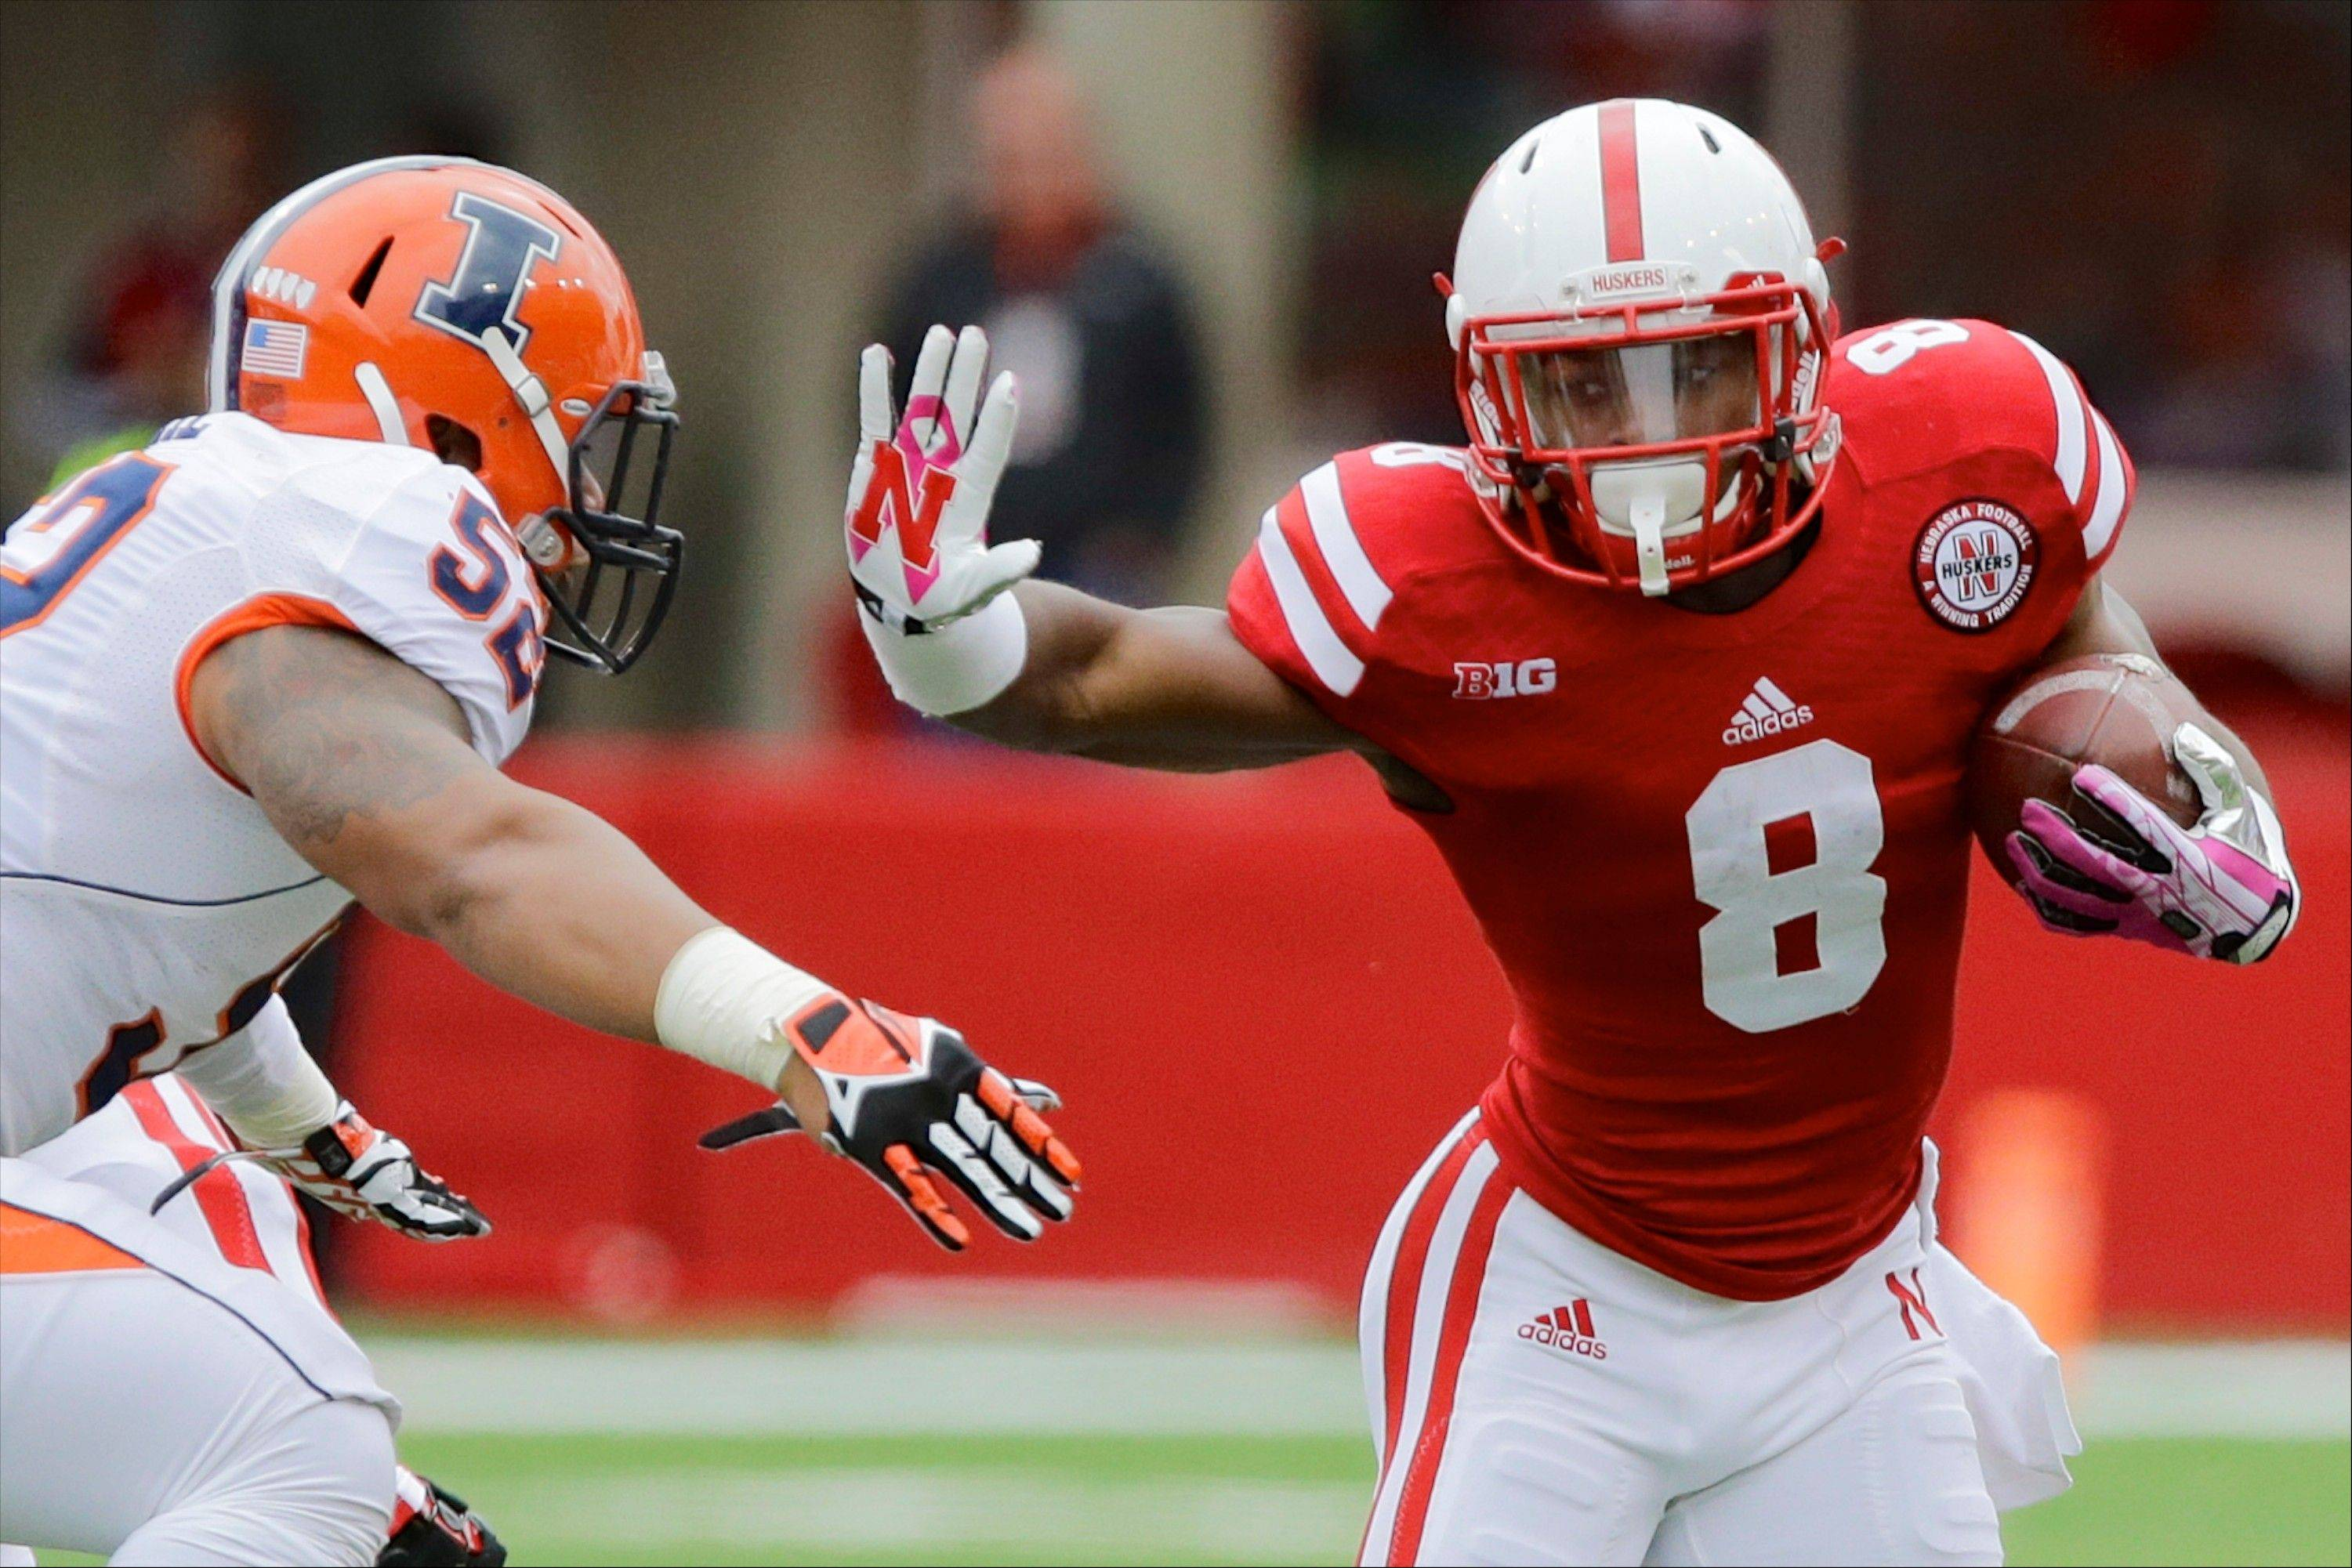 Nebraska's Ameer Abdullah runs past Illinois linebacker T.J. Neal in the second half of Saturday's game in Lincoln, Neb. Abdullah ran for a career-high 225 yards and two touchdowns in Nebraska's 39-19 win.